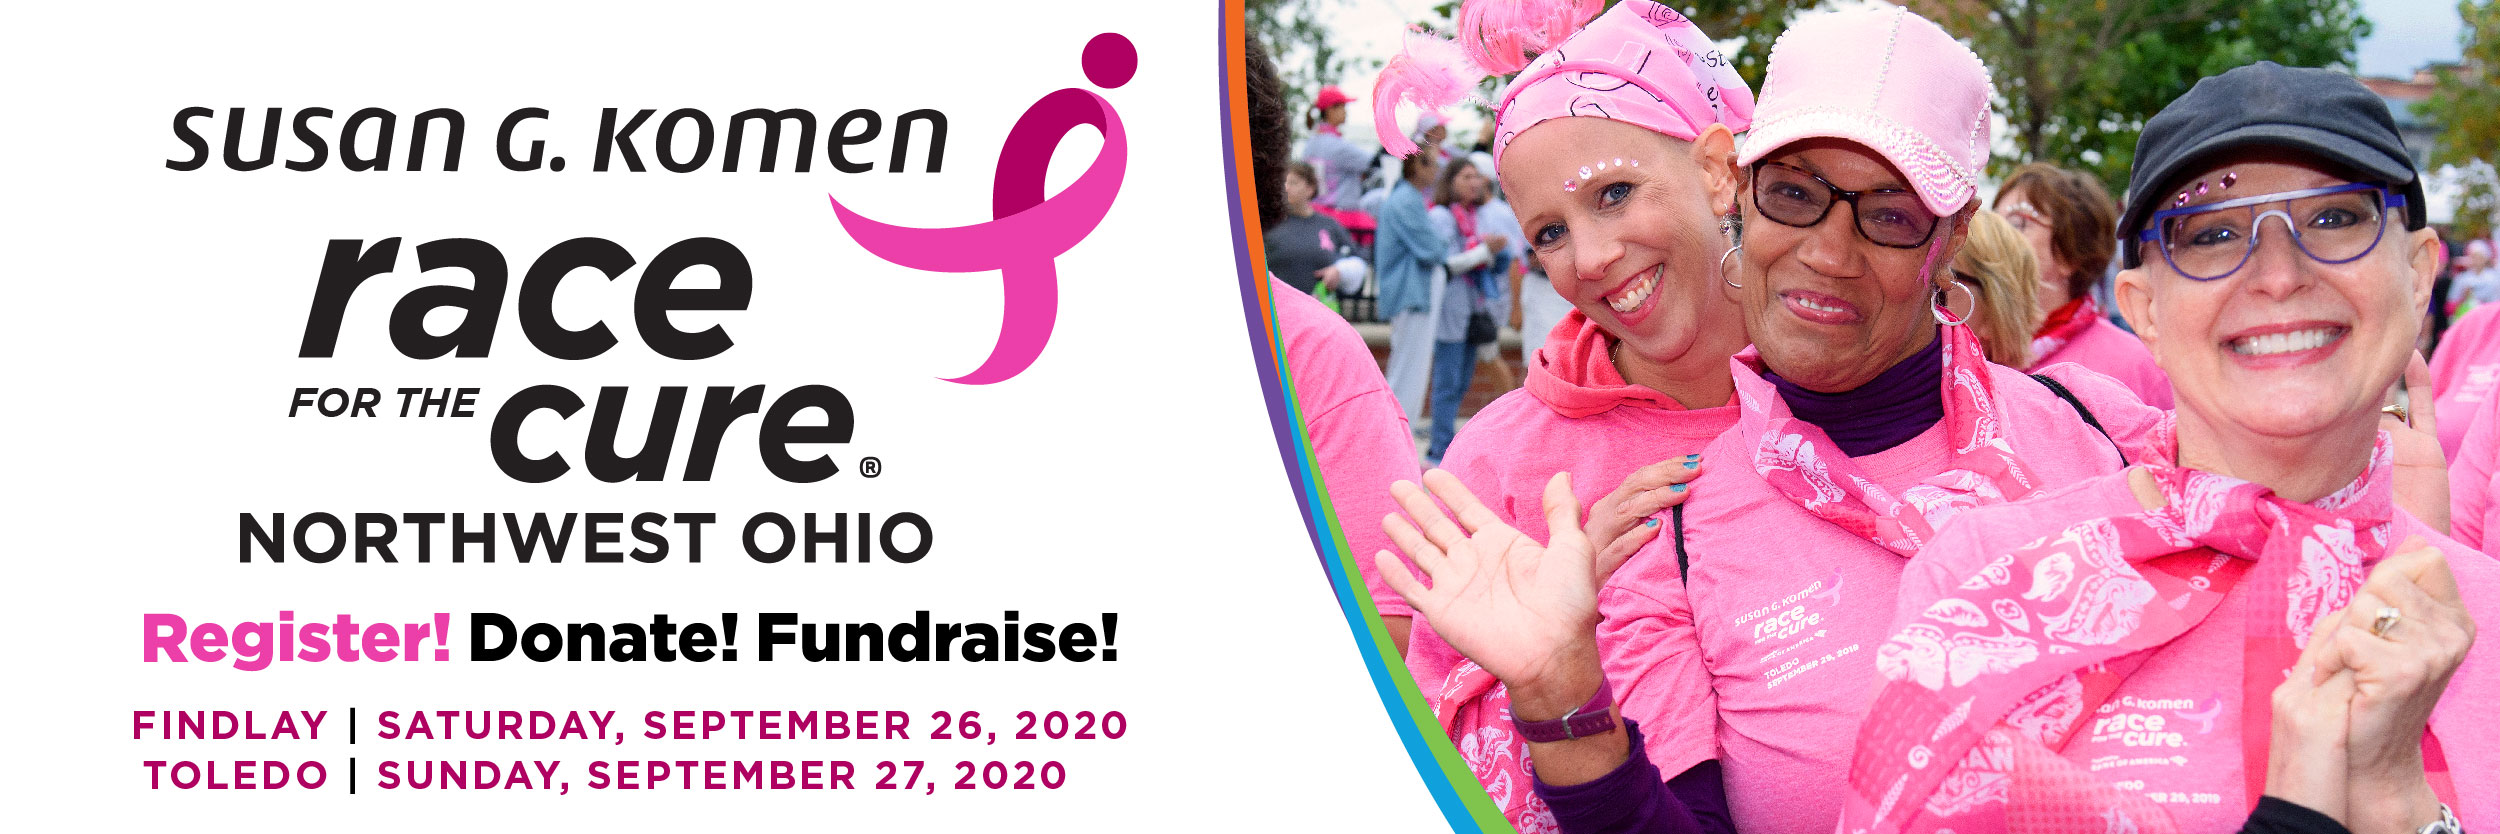 Race for the Cure 2020 email header-01.jpg